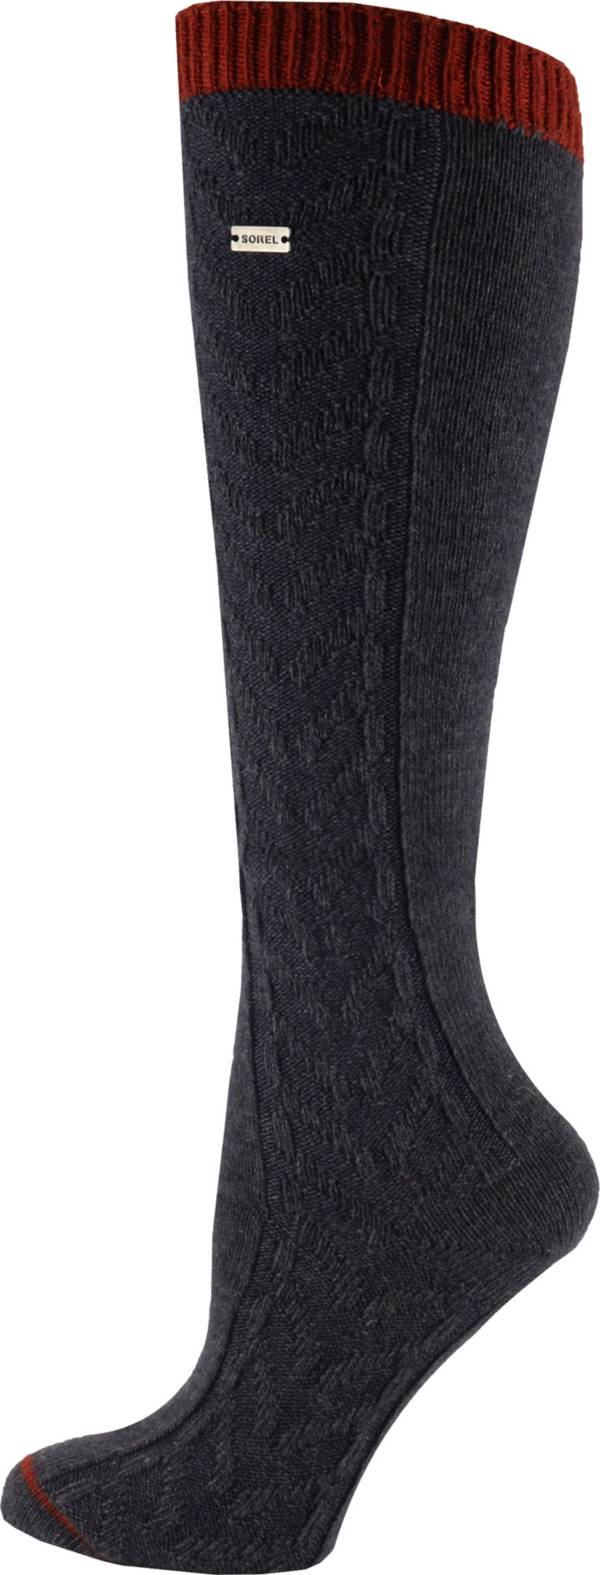 SOREL Women's Novelty Cable Wool Knee High Socks product image